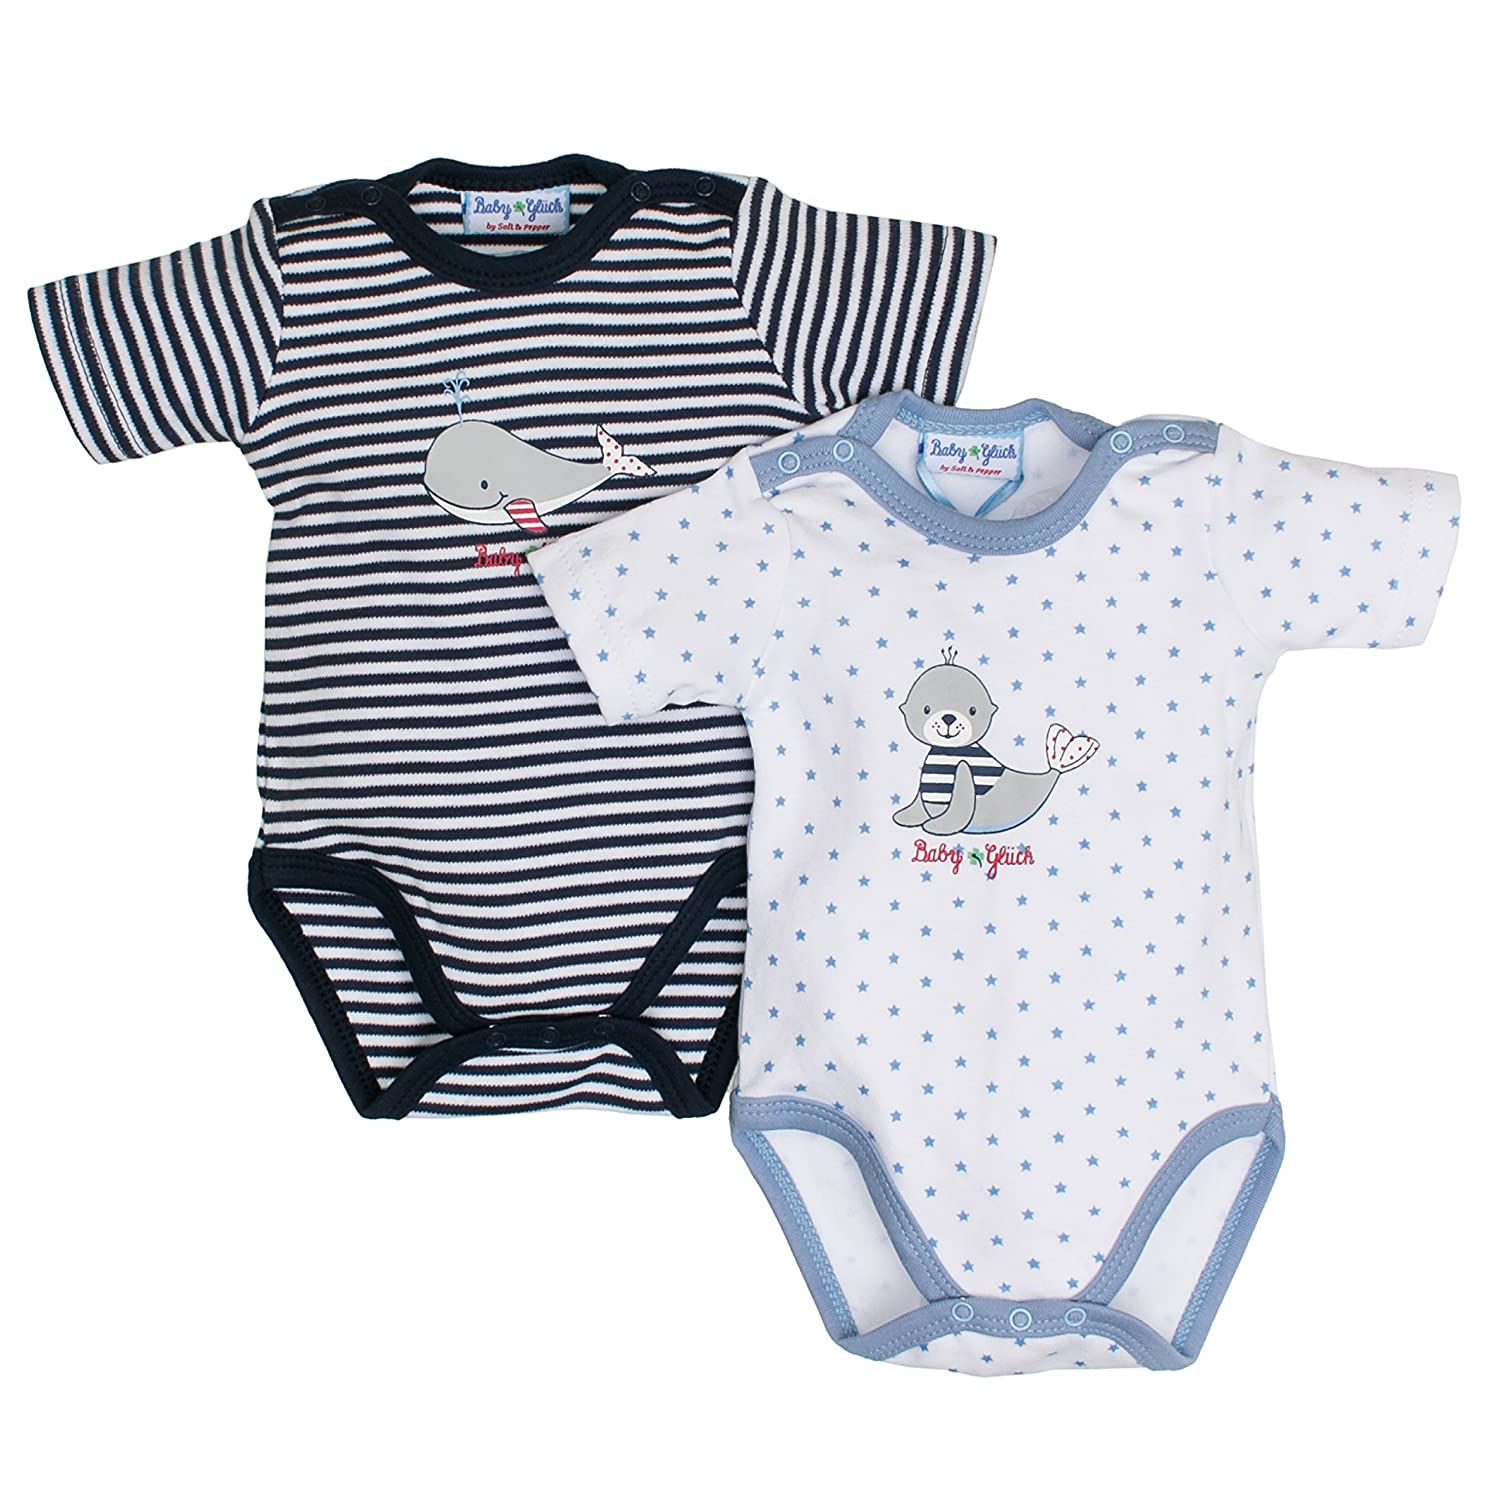 SALT AND PEPPER Baby-Jungen Body Bg Set 73830129